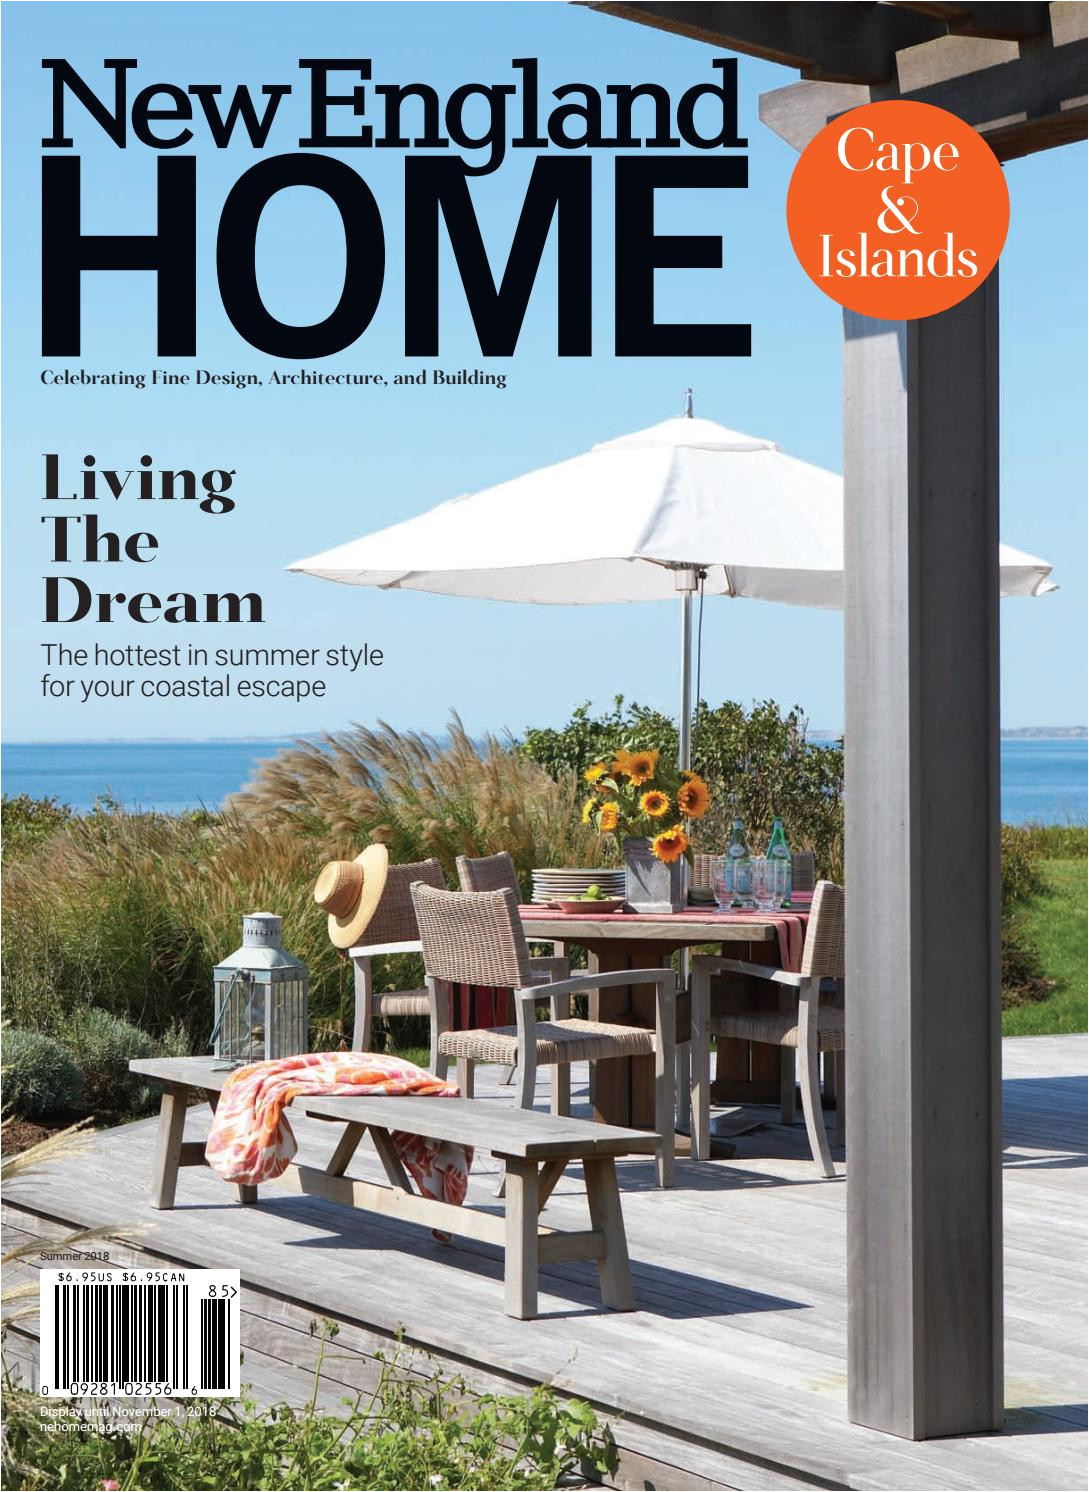 Chattam and Wells Queen Mattress New England Home Cape and islands 2018 by New England Home Magazine